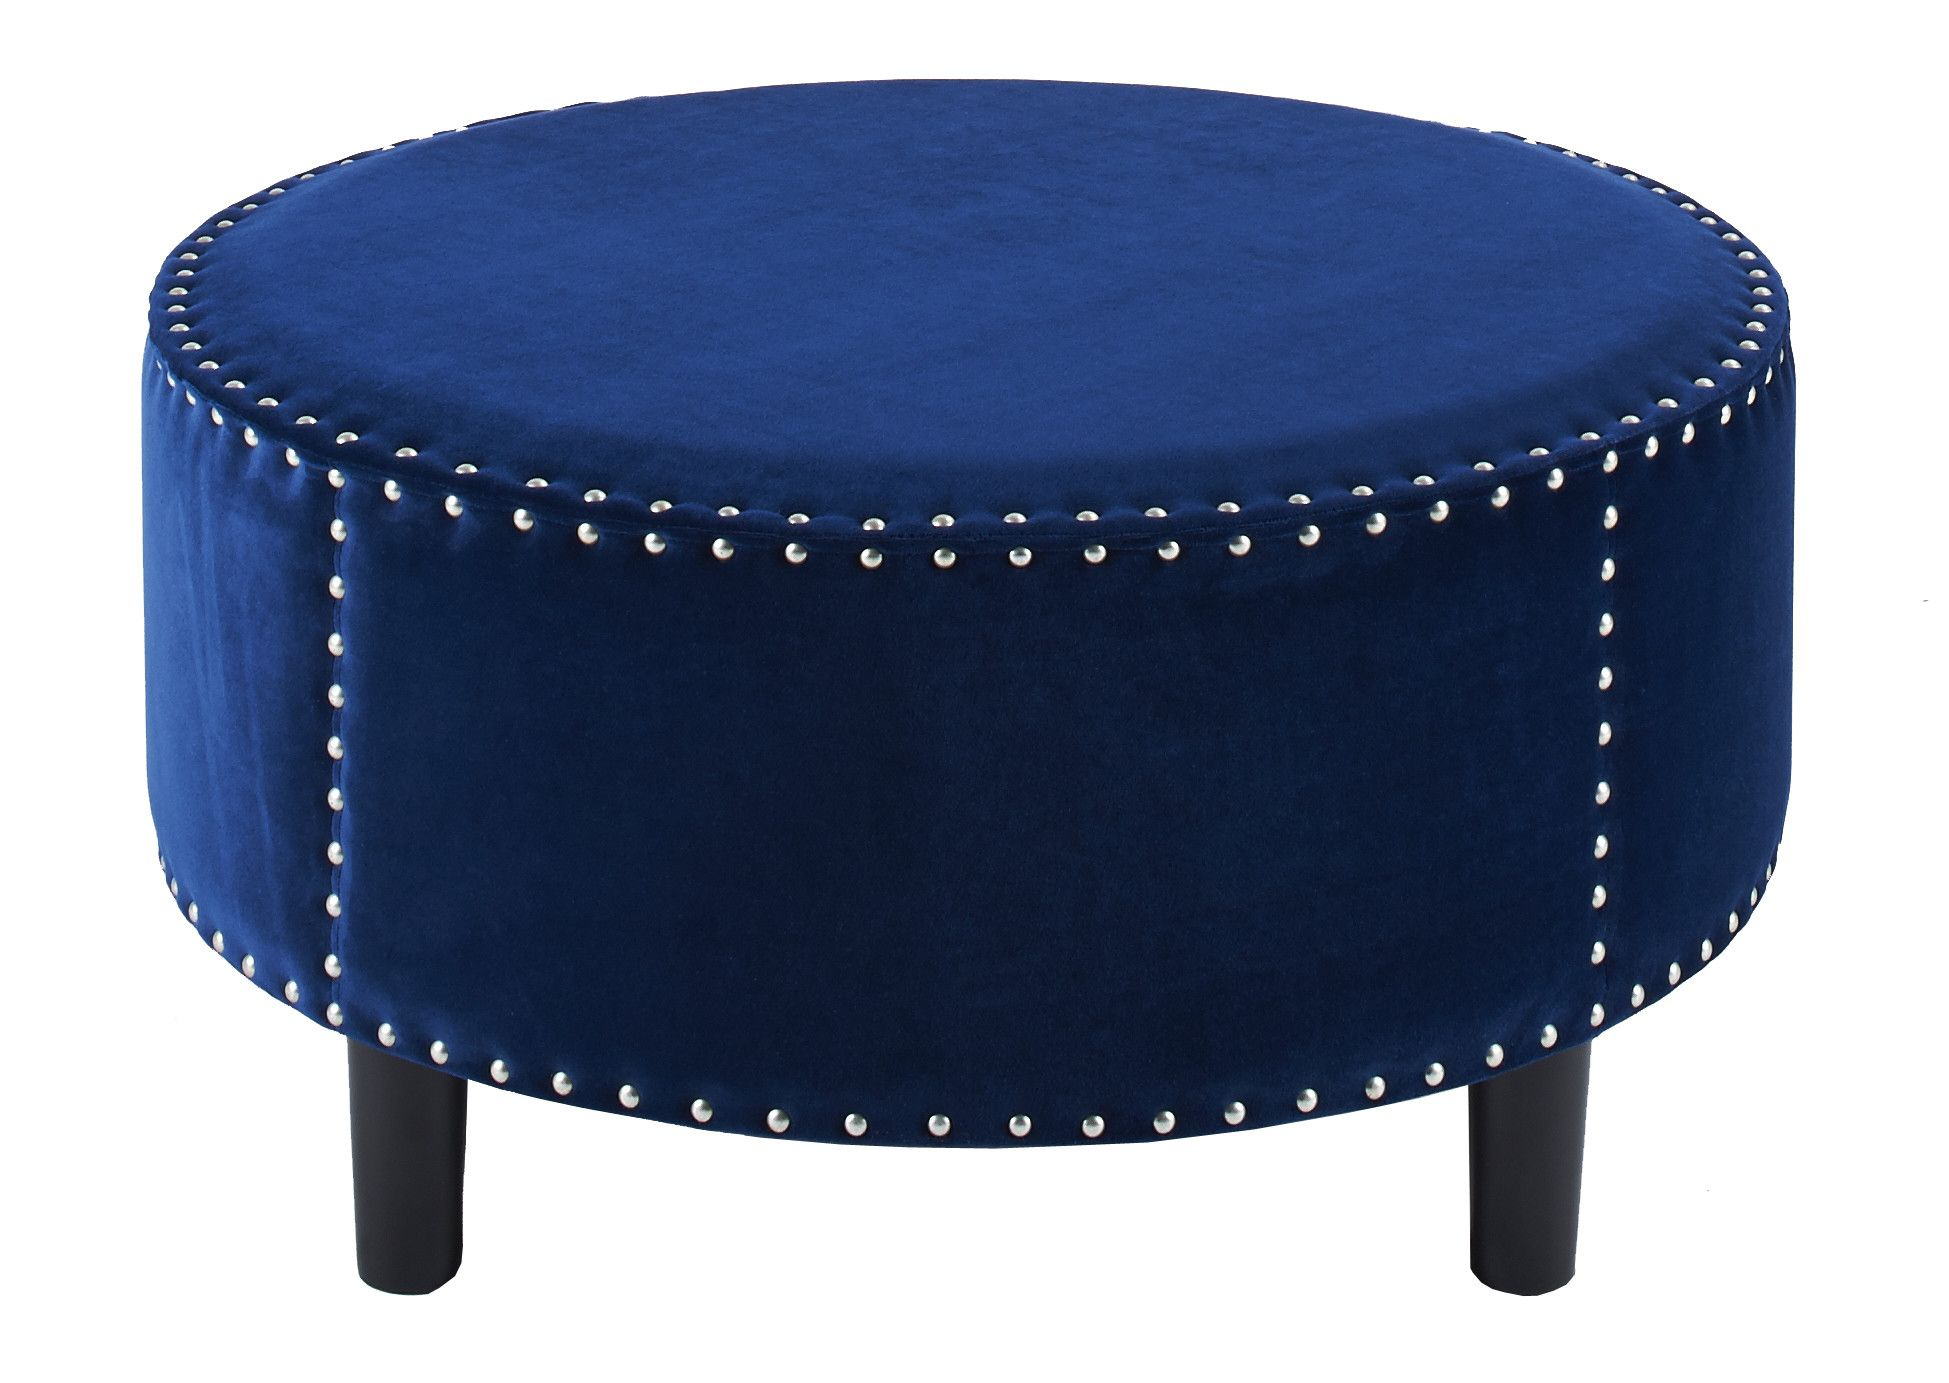 Making A Footstool